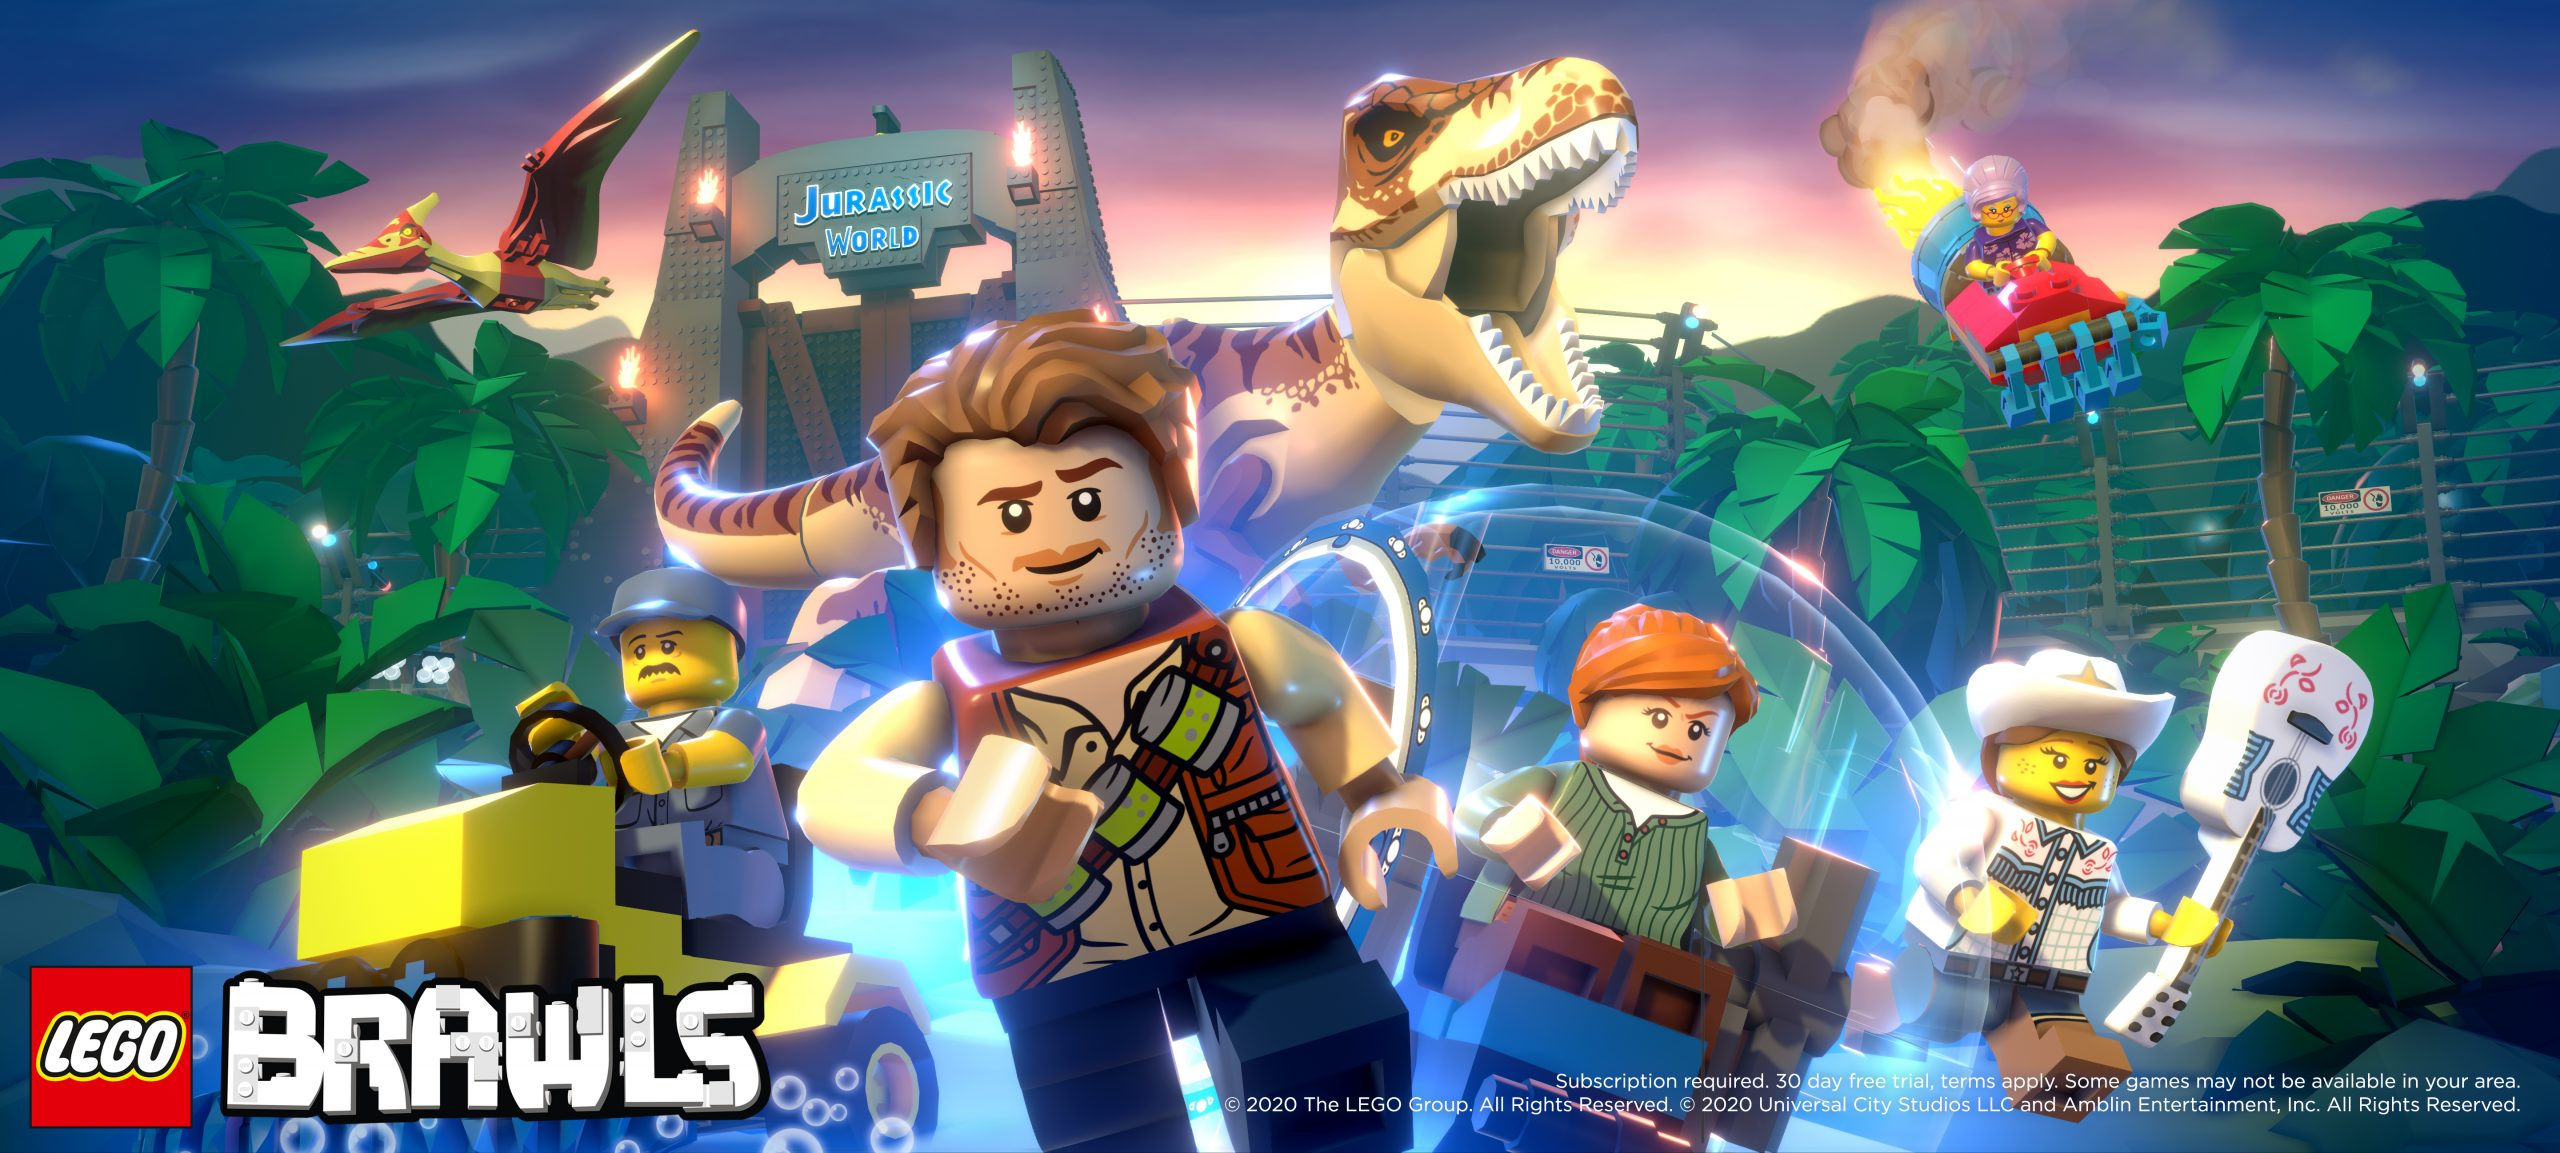 New Jurassic World Content Comes to LEGO Brawls Mobile Game